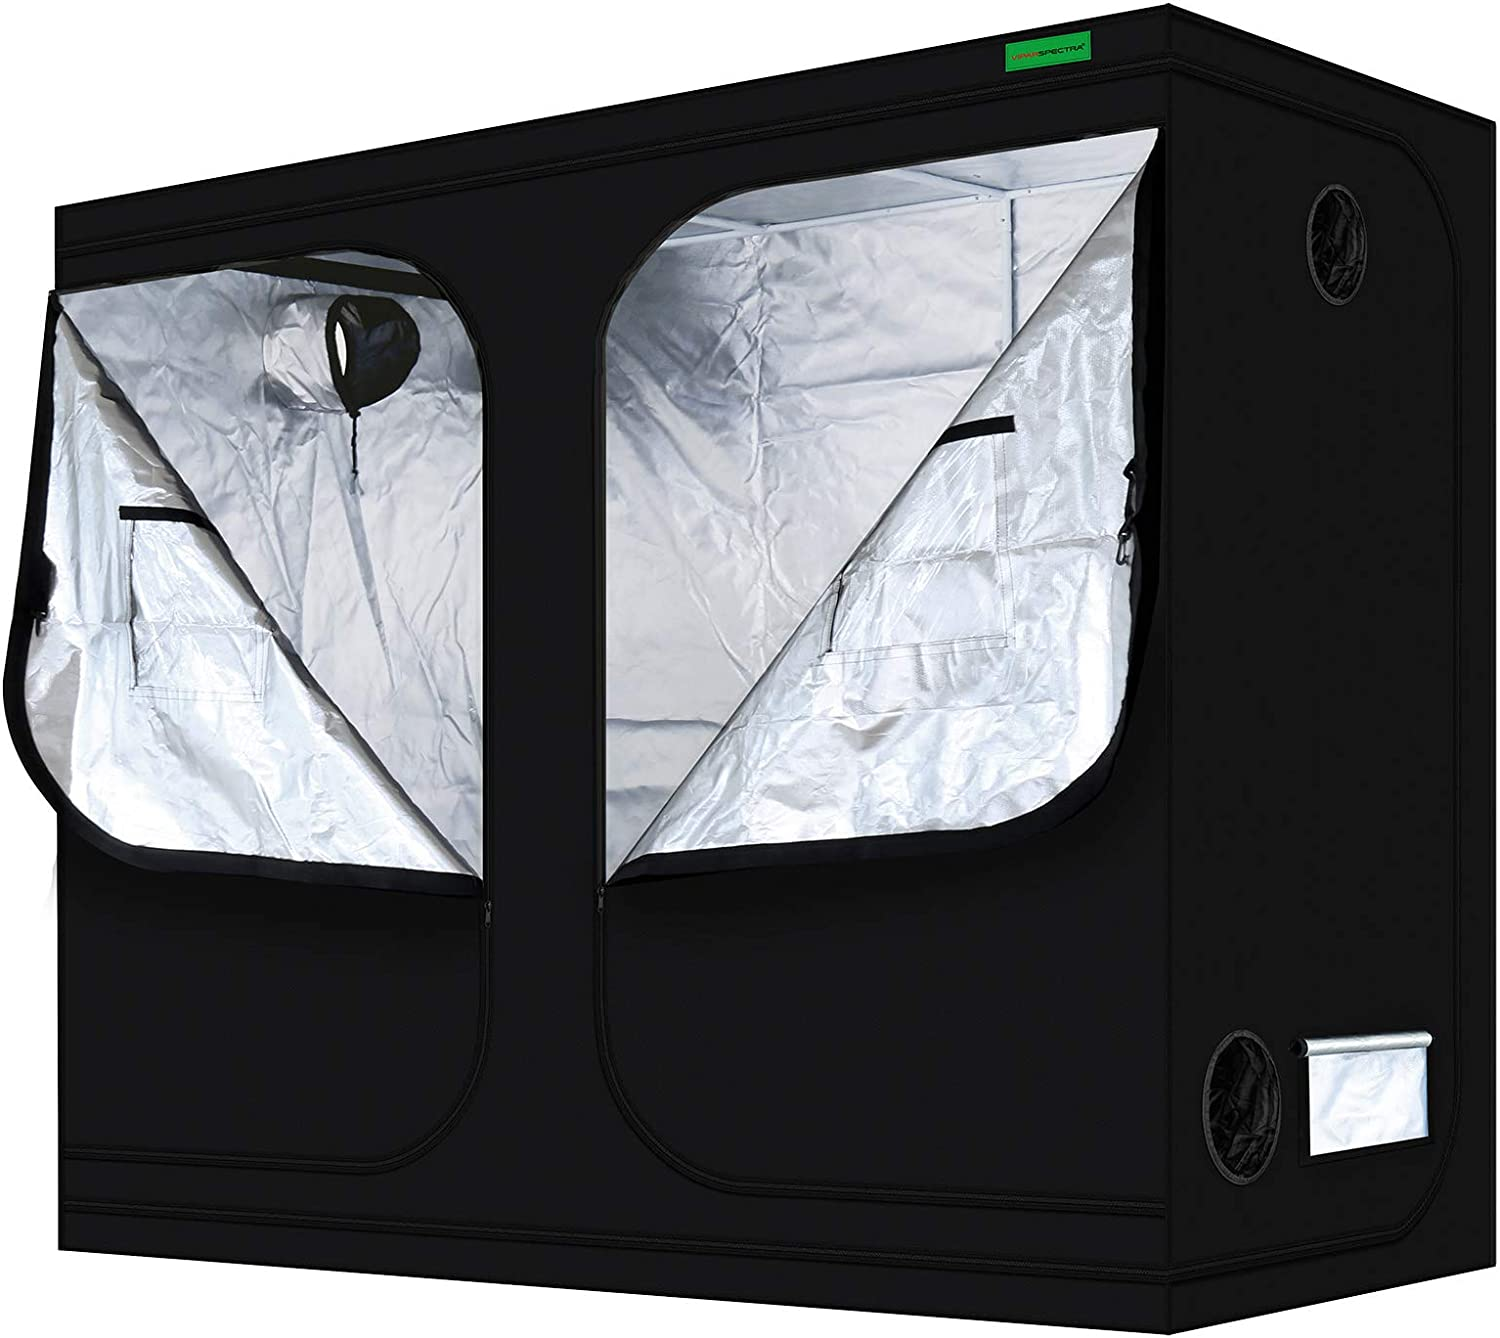 "VIPARSPECTRA 96""x48""x80""Mylar Hydroponic Grow Tent with Observation Window and Floor Tray for Indoor Plant Growing 8'x4'"